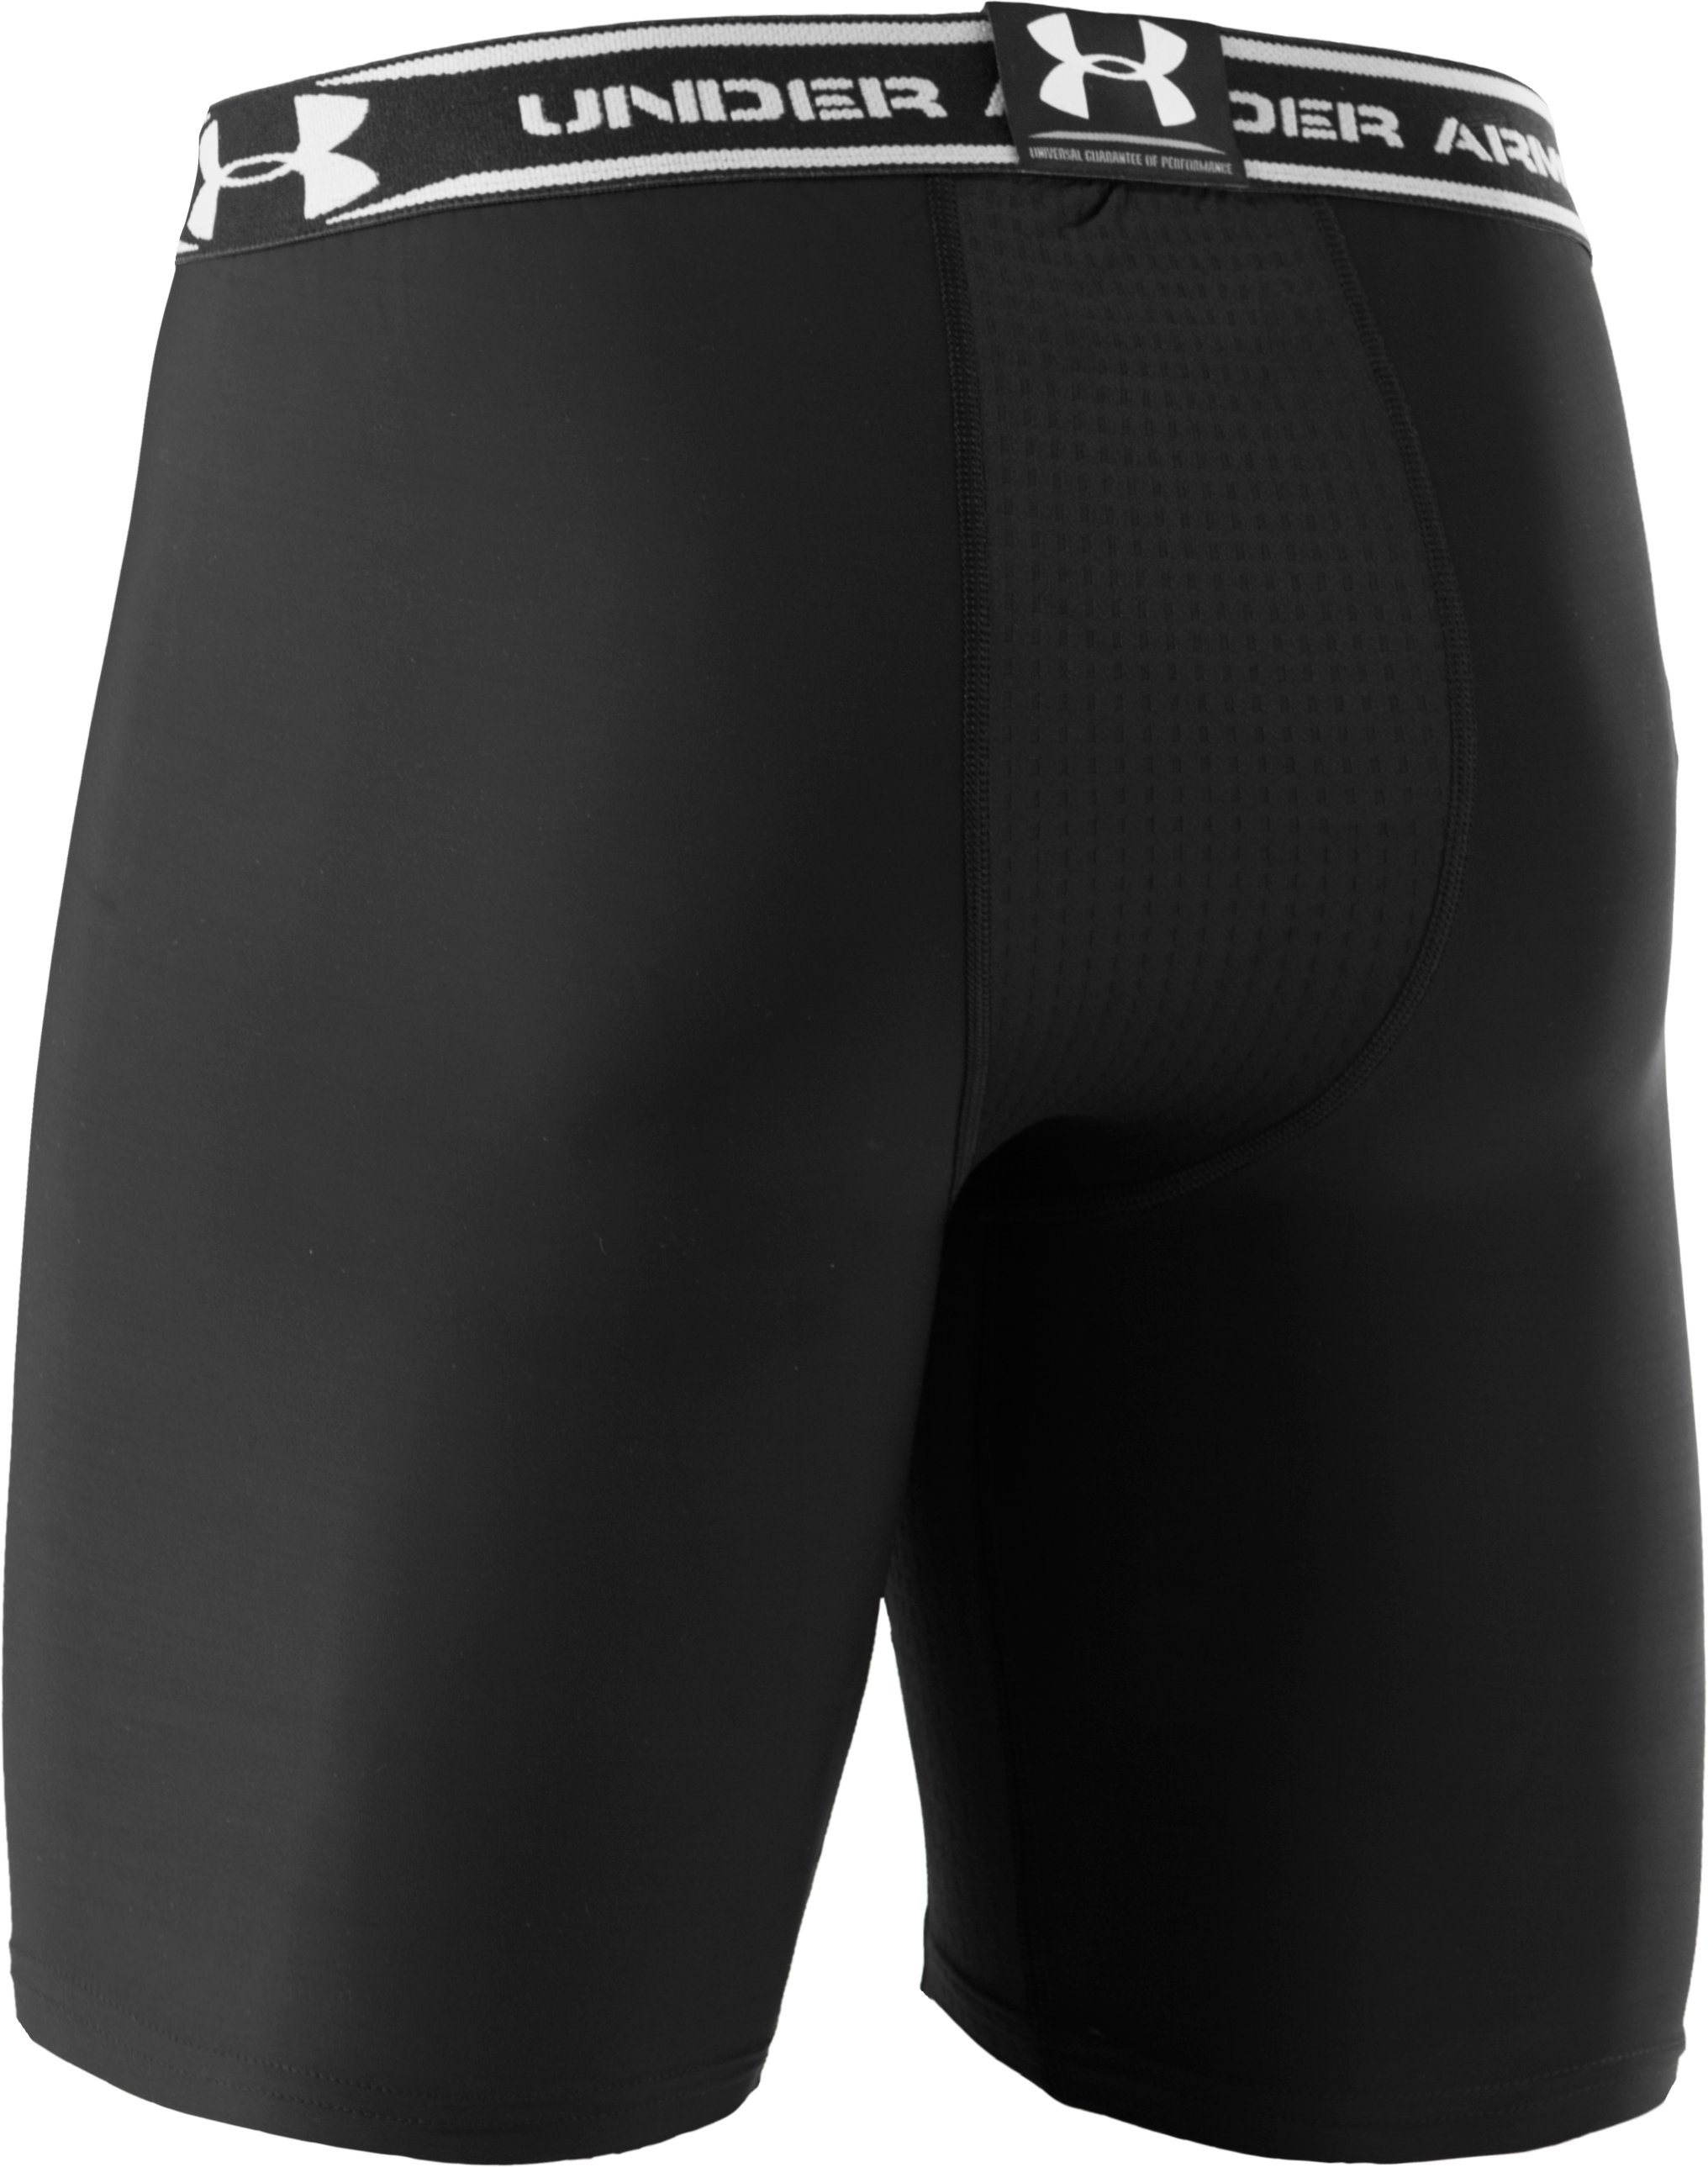 "Men's HeatGear® Vented 7"" Compression Shorts, Black"